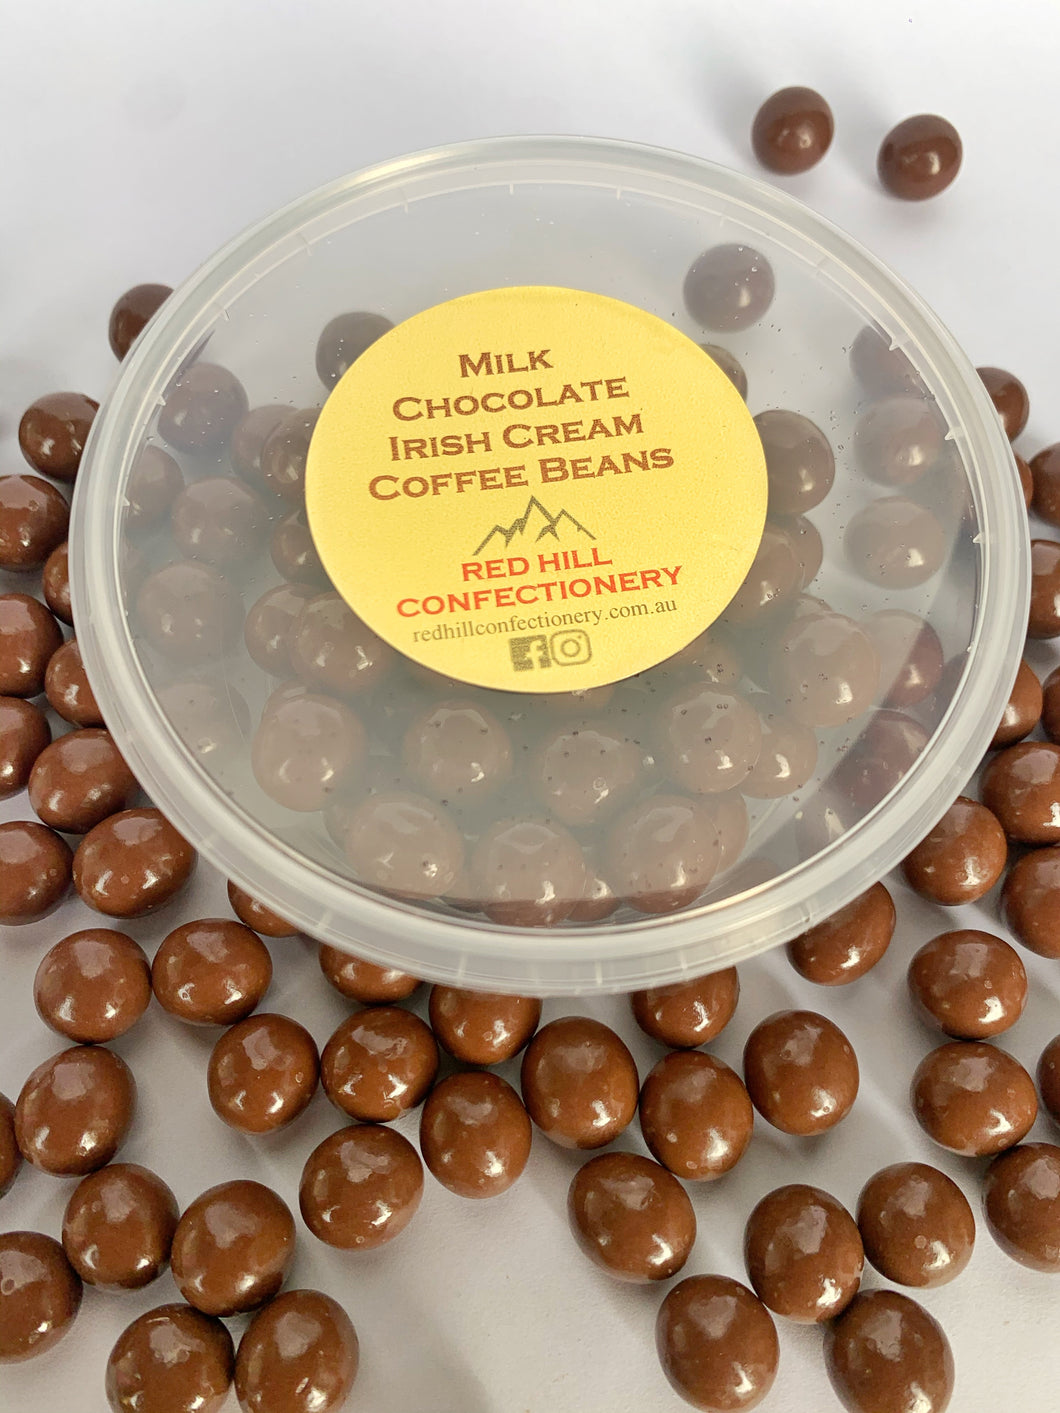 Red Hill Confectionery - Milk Chocolate Irish Cream Coffee Beans 120g Tub